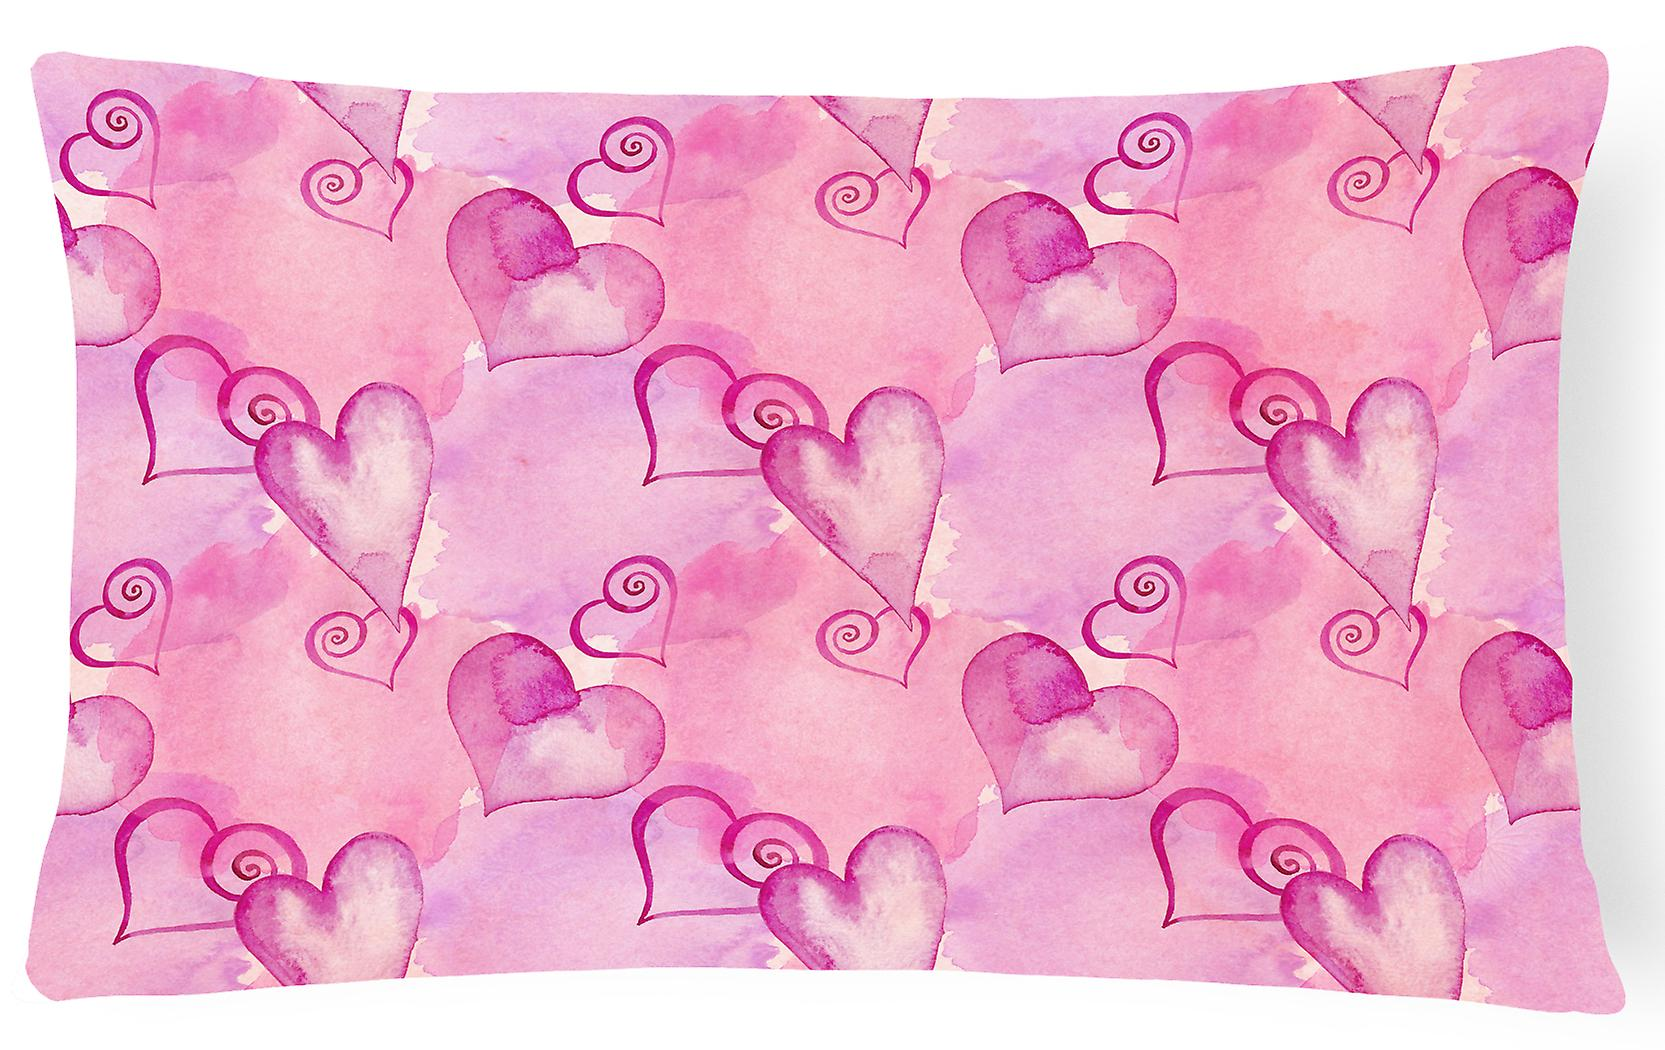 Fabric Pink Hearts Canvas Hot Decorative Pillow Watercolor SMqzVpU